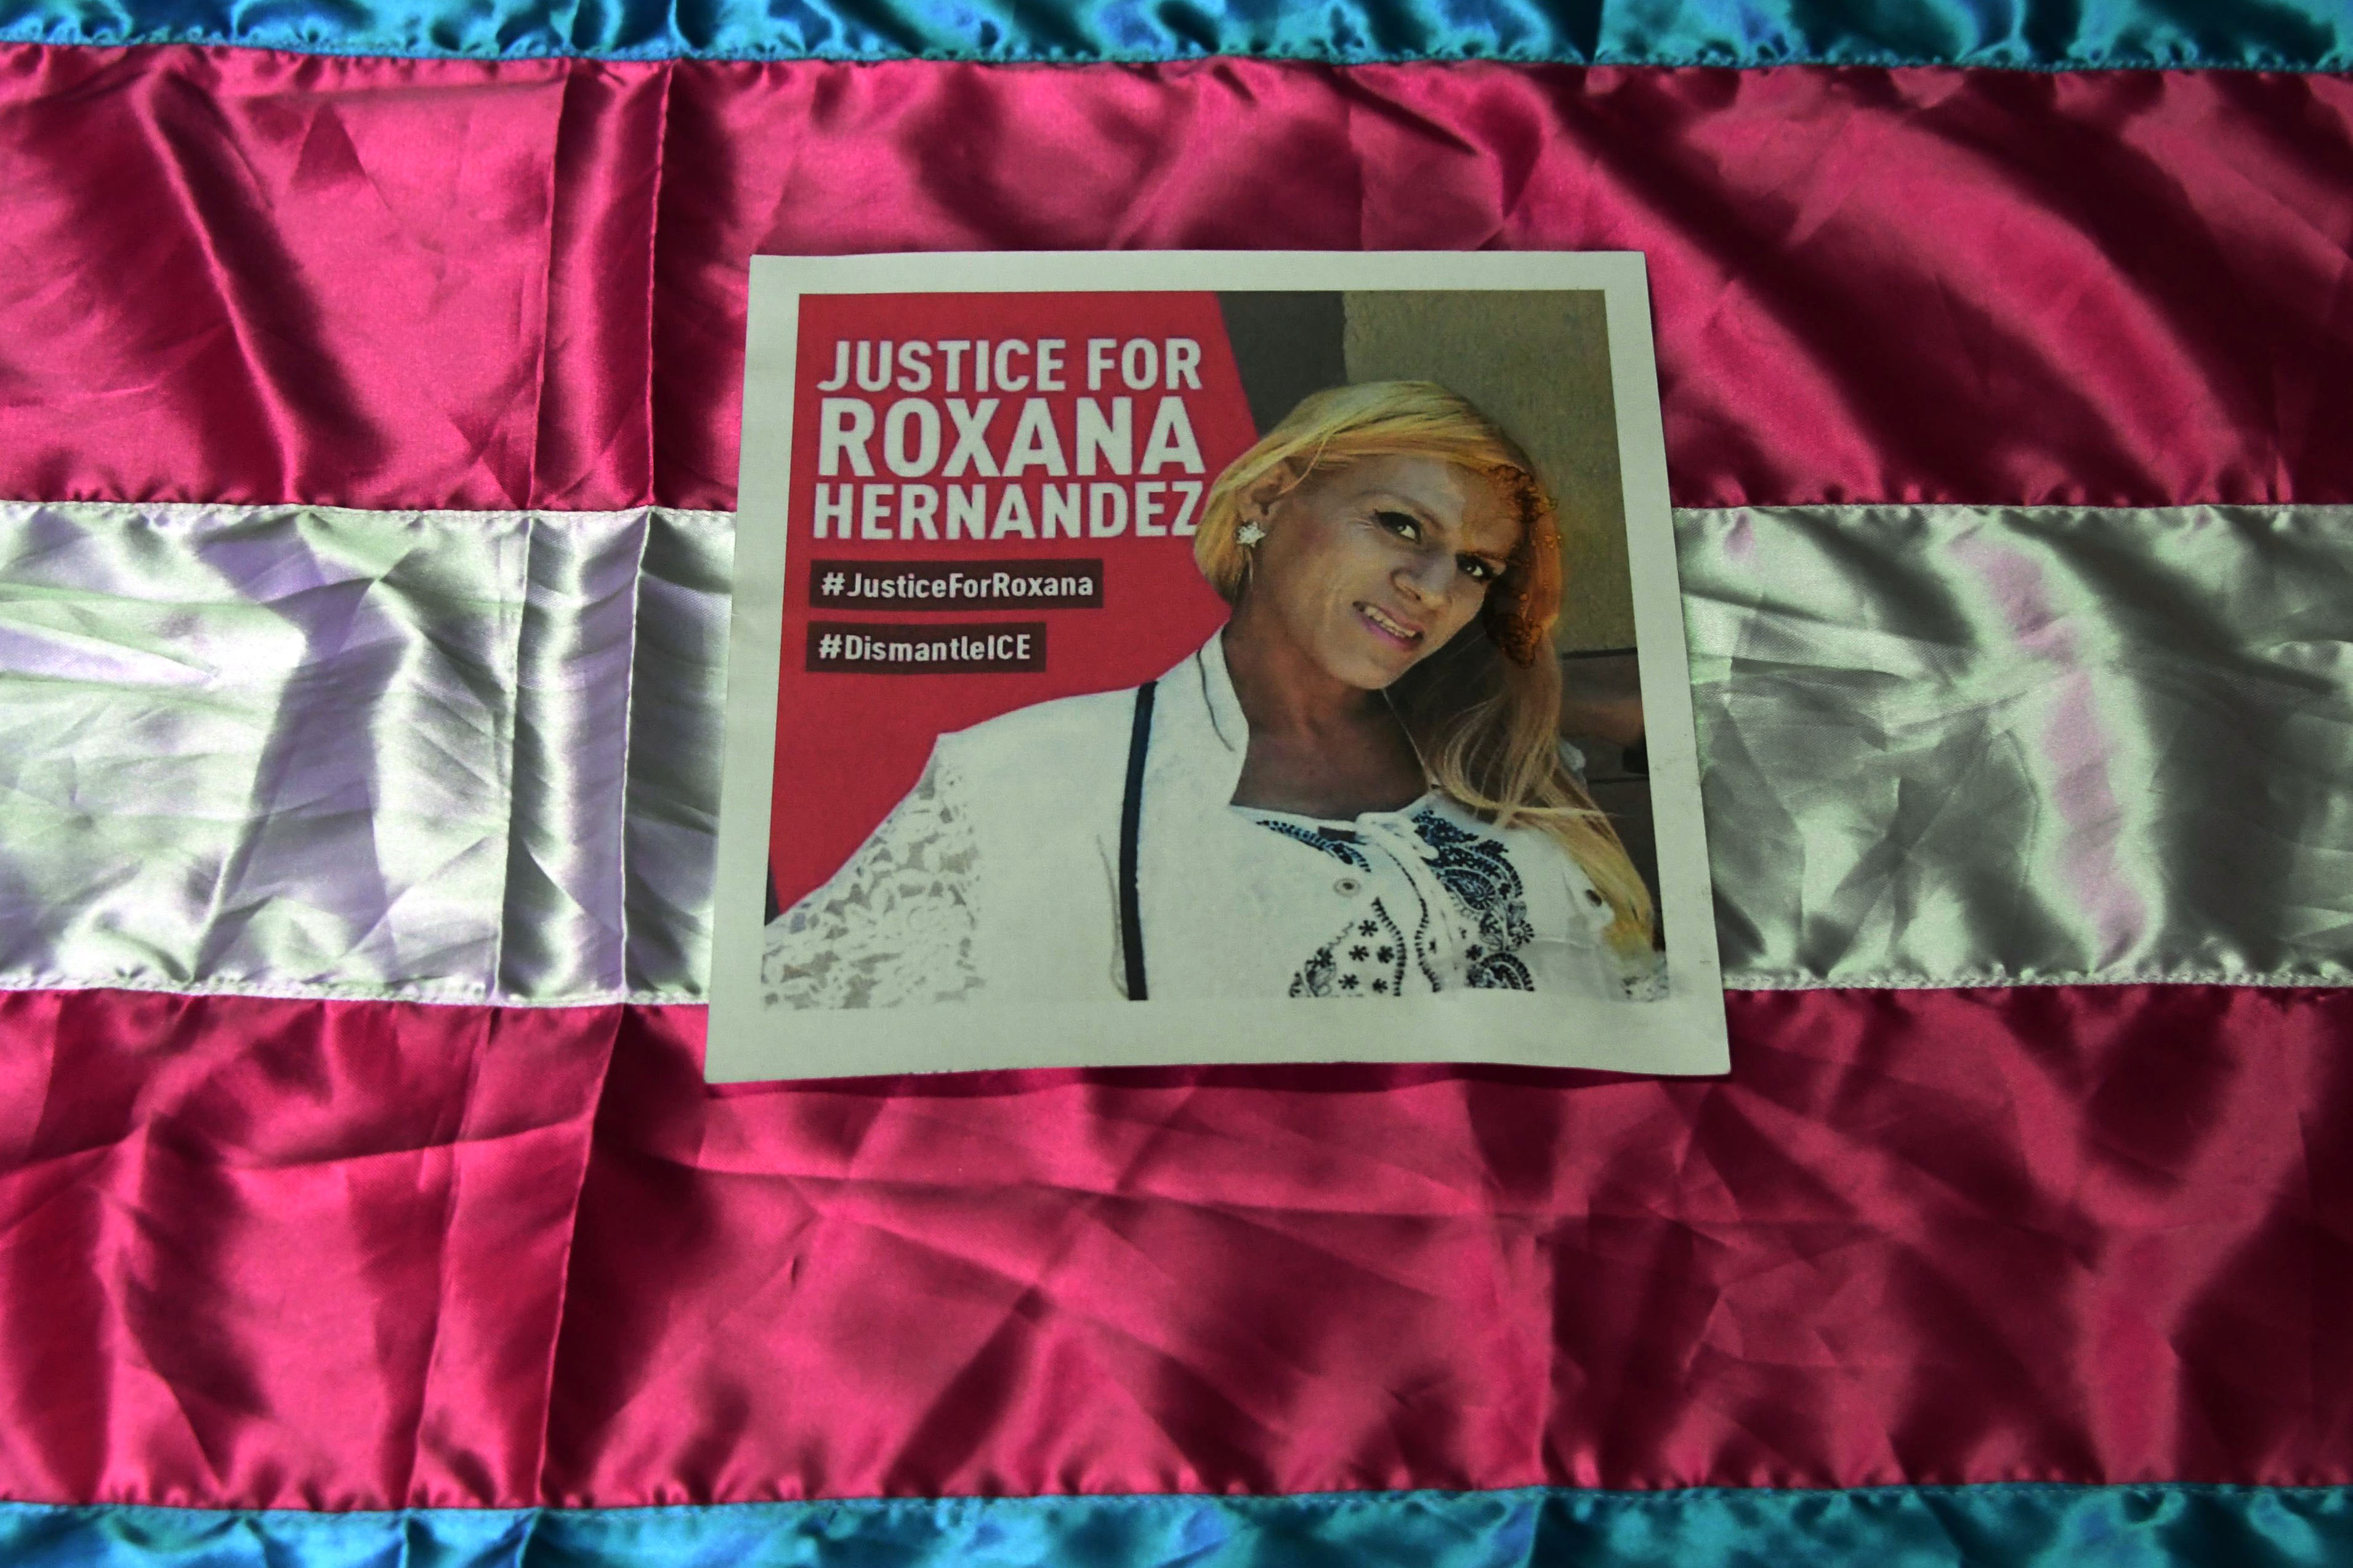 """A poster demanding justice in the death of Honduran transgender woman Roxana Hernandez, who died of pneumonia, dehydration and """"complications associated with HIV,"""" while in ICE custody."""